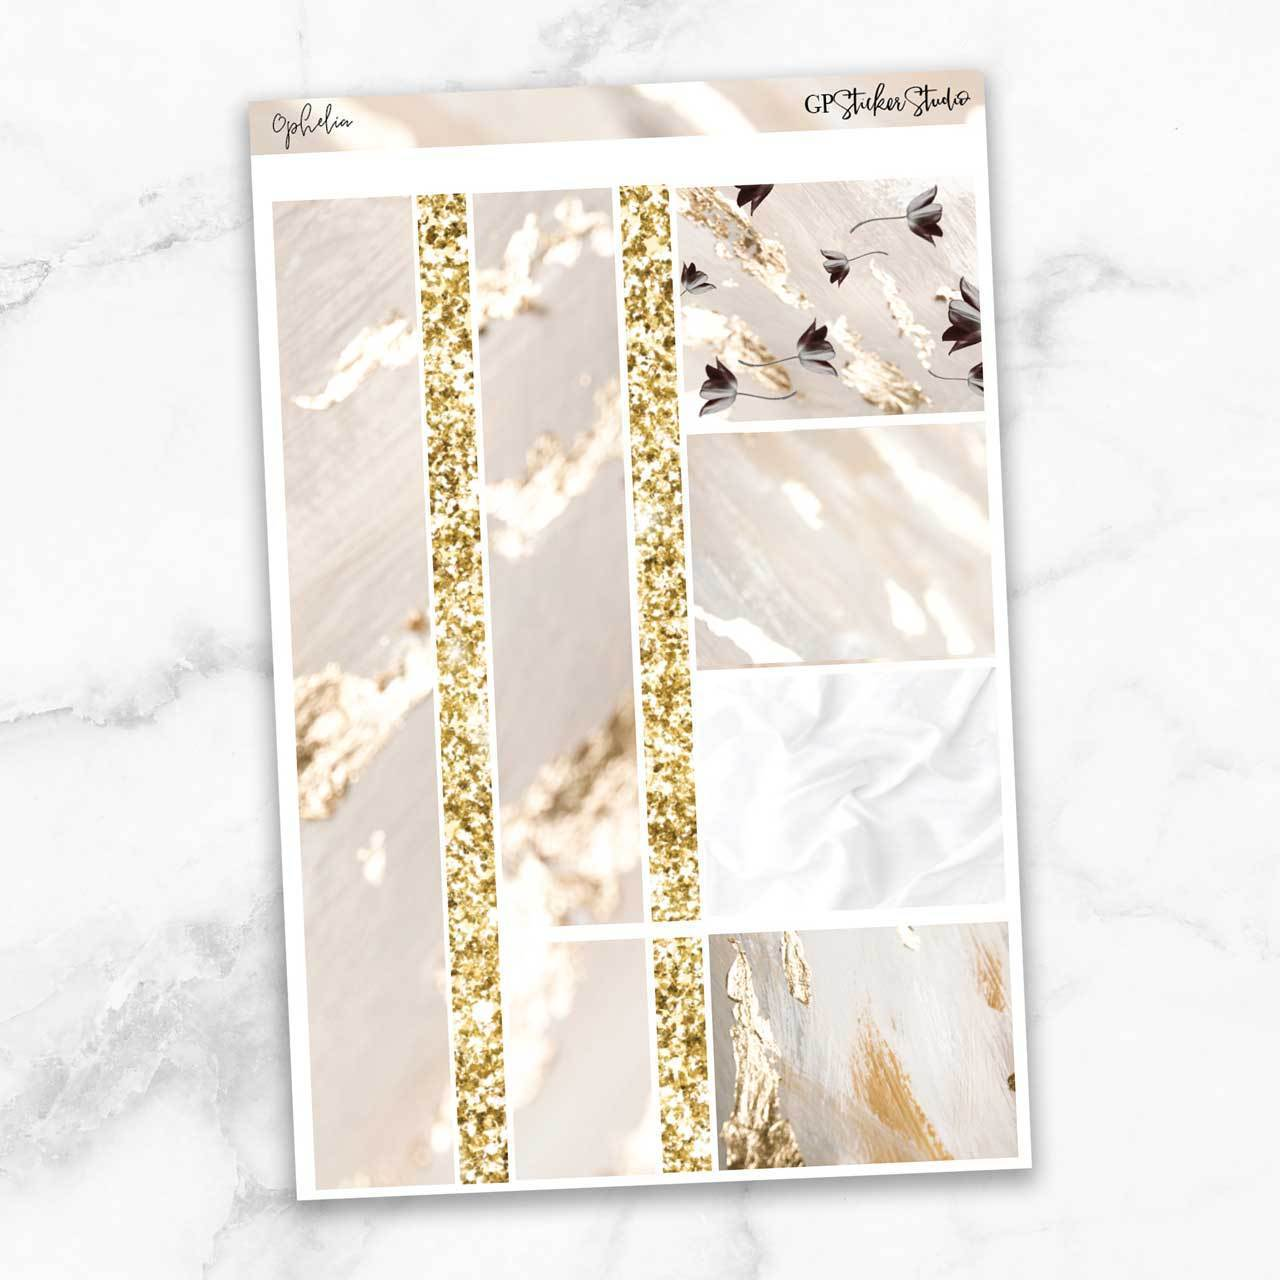 OPHELIA Washi Sheet Stickers-The GP Studio